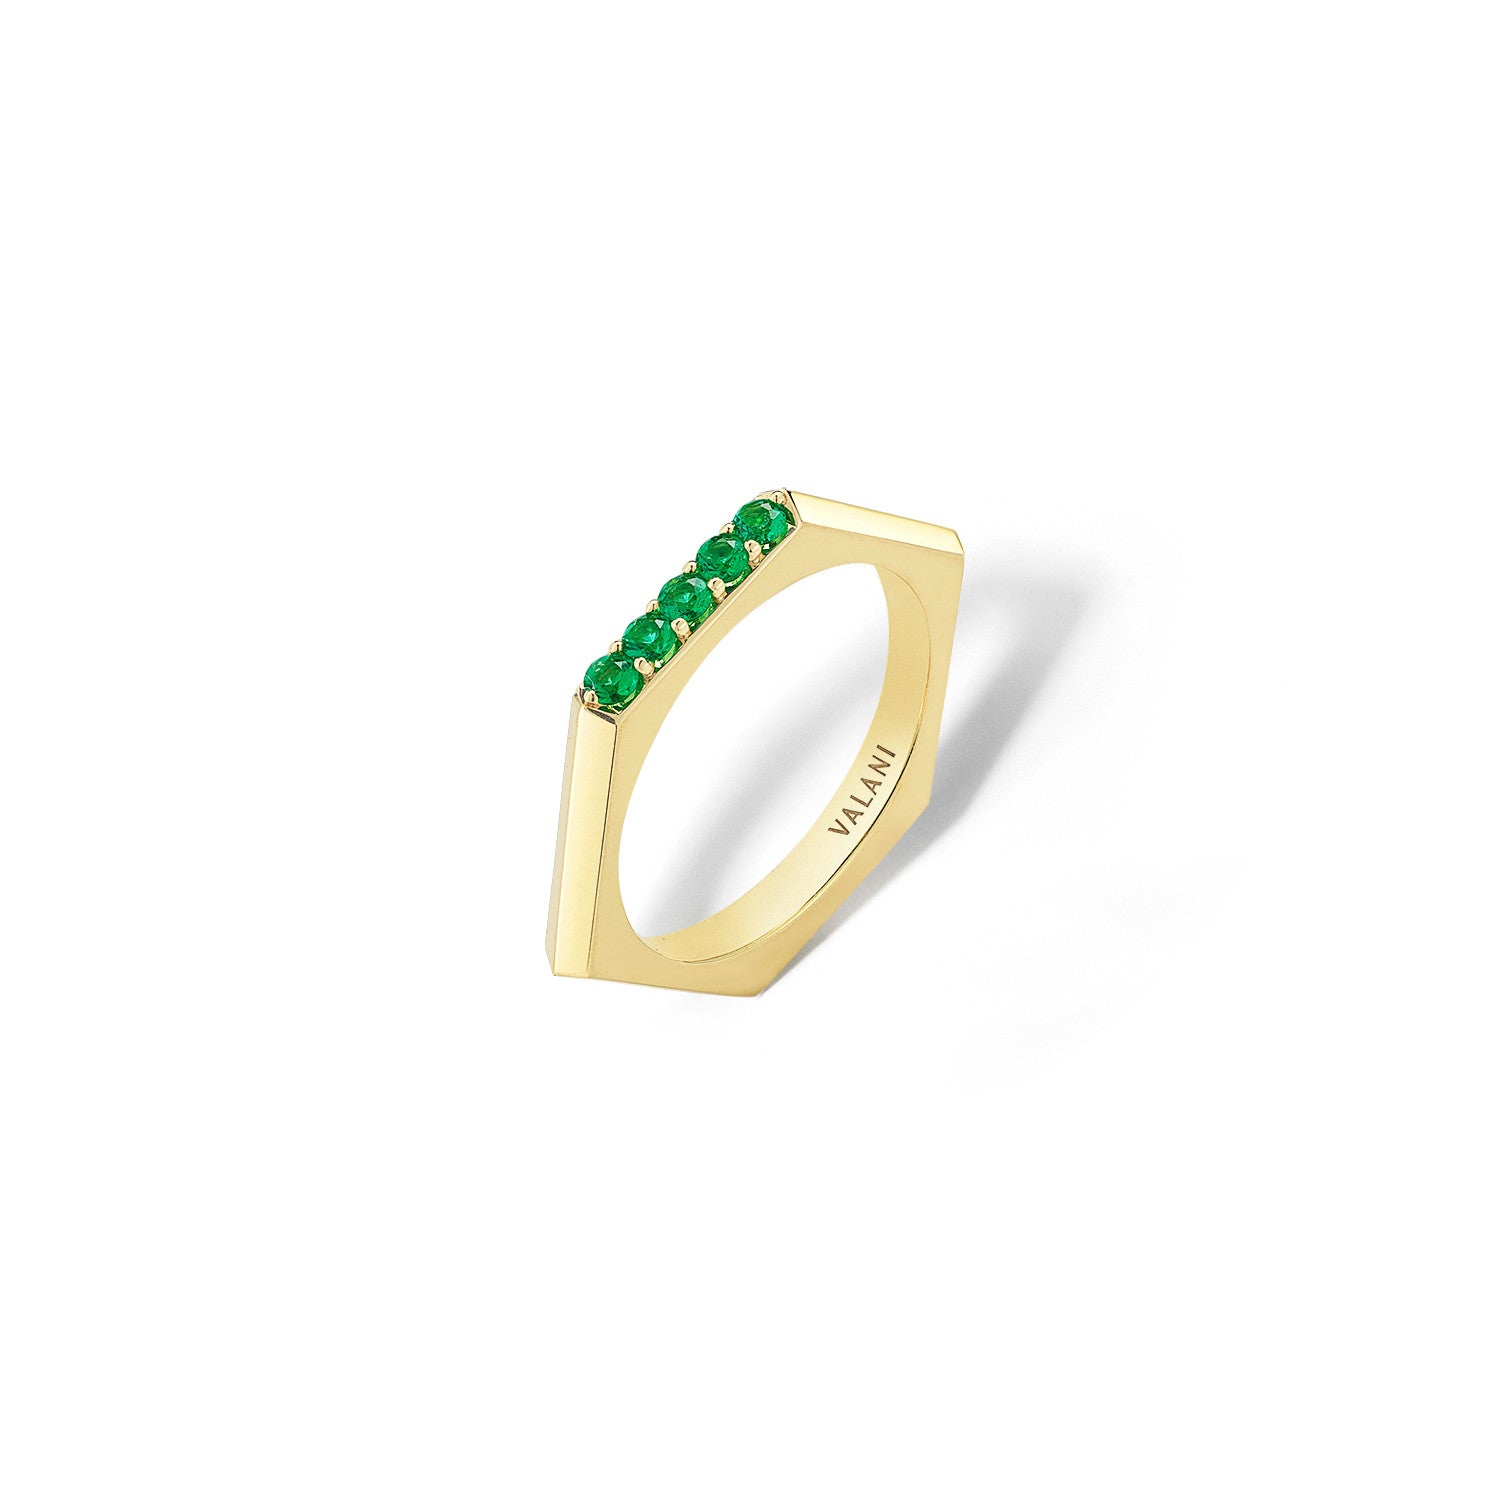 ring emerald solo engagement bands london wedding rings jaubalet jewellery laureen